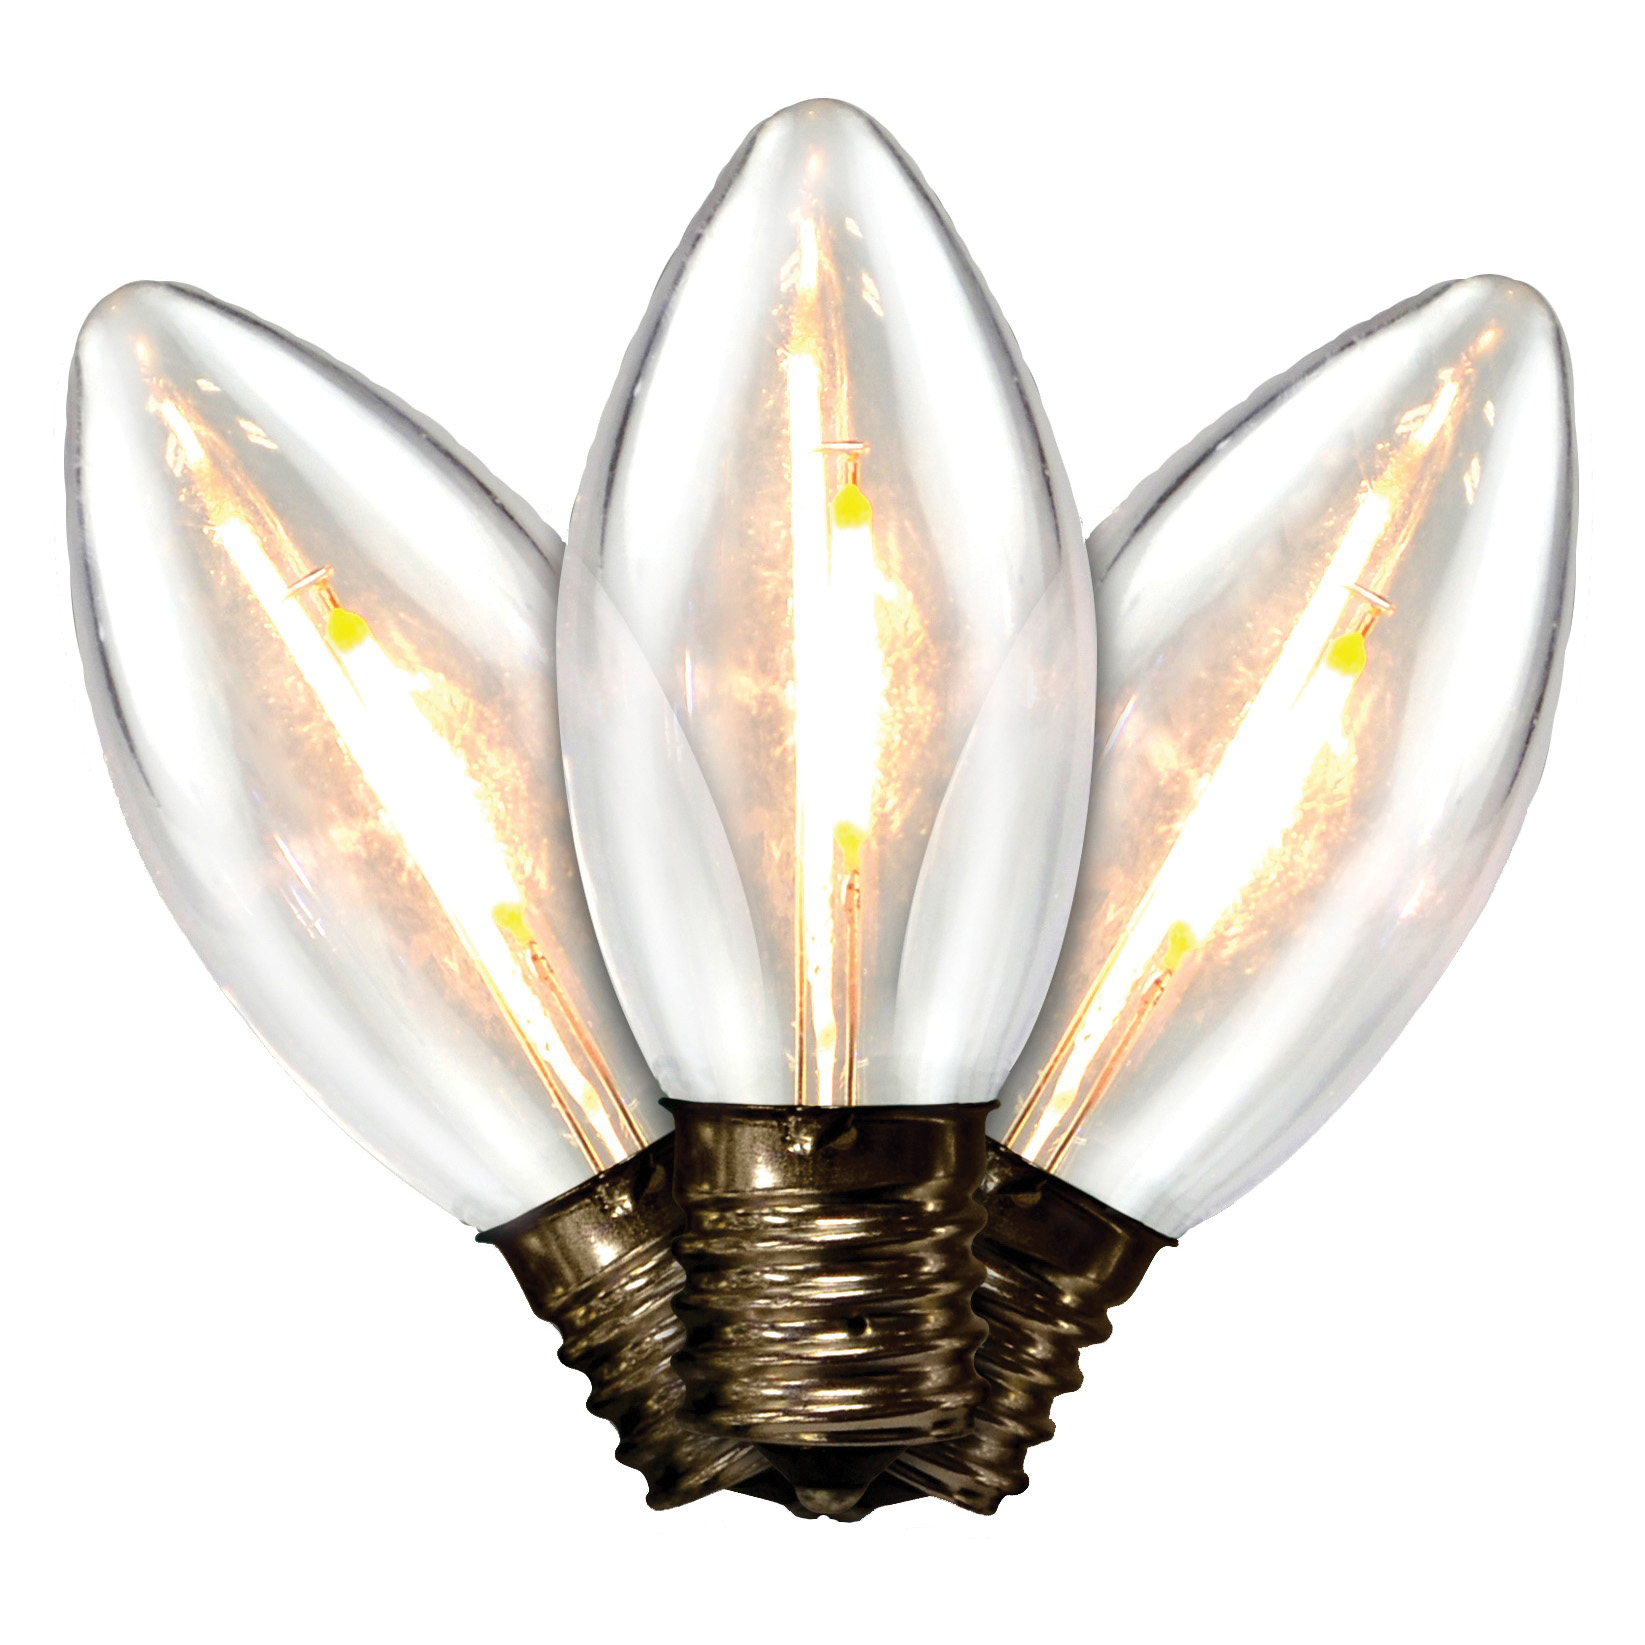 Picture of Holiday Bright Lights BU25FLDSC9-TWW Light Bulb, .6 W, Intermediate (E17) Lamp Base, LED Lamp, Warm White Light